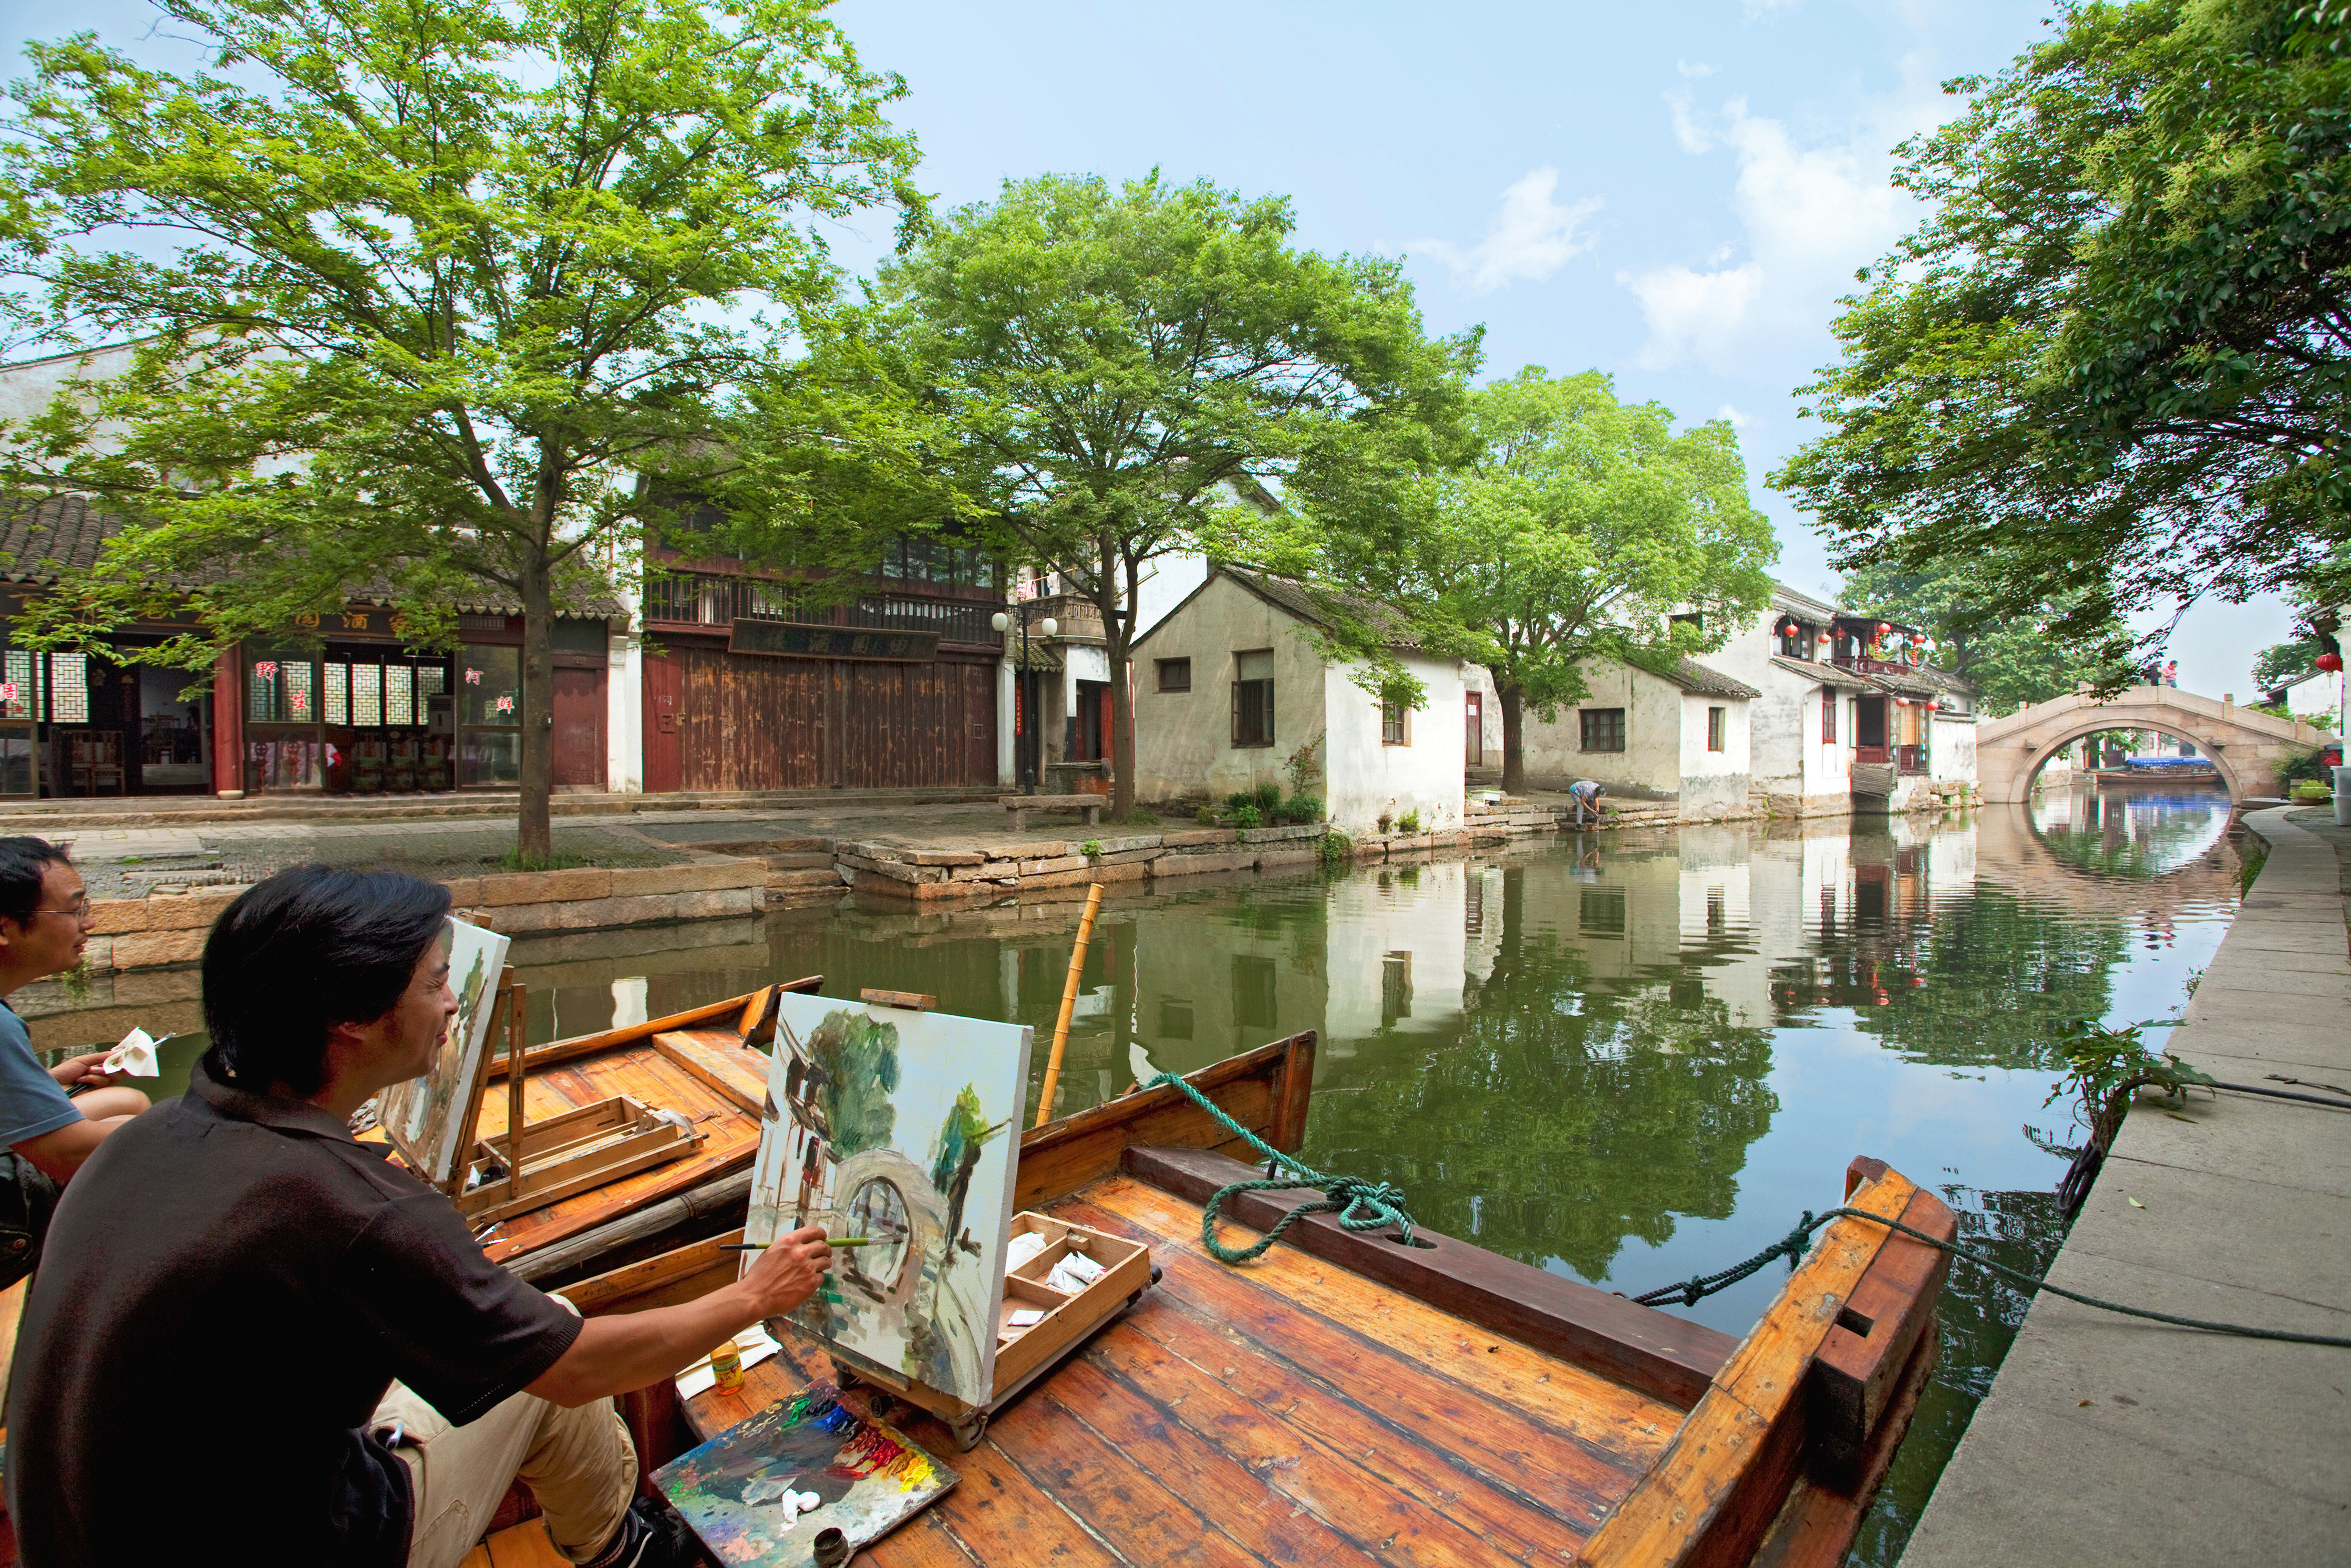 Bar Dining Drink Eat Luxury tree waterway Canal home cottage boathouse